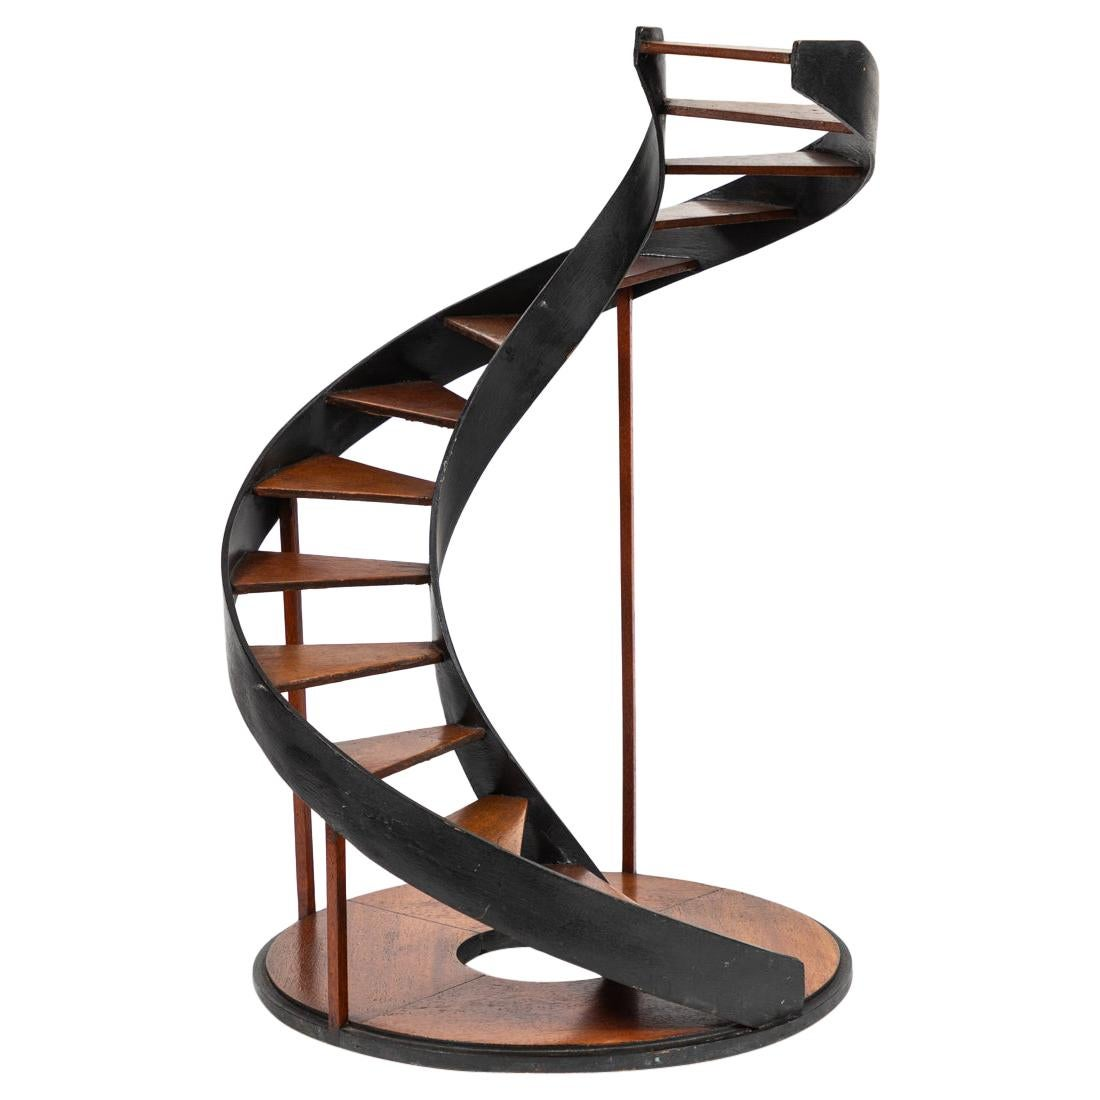 Late 19th Century Model of a Circular Staircase from France